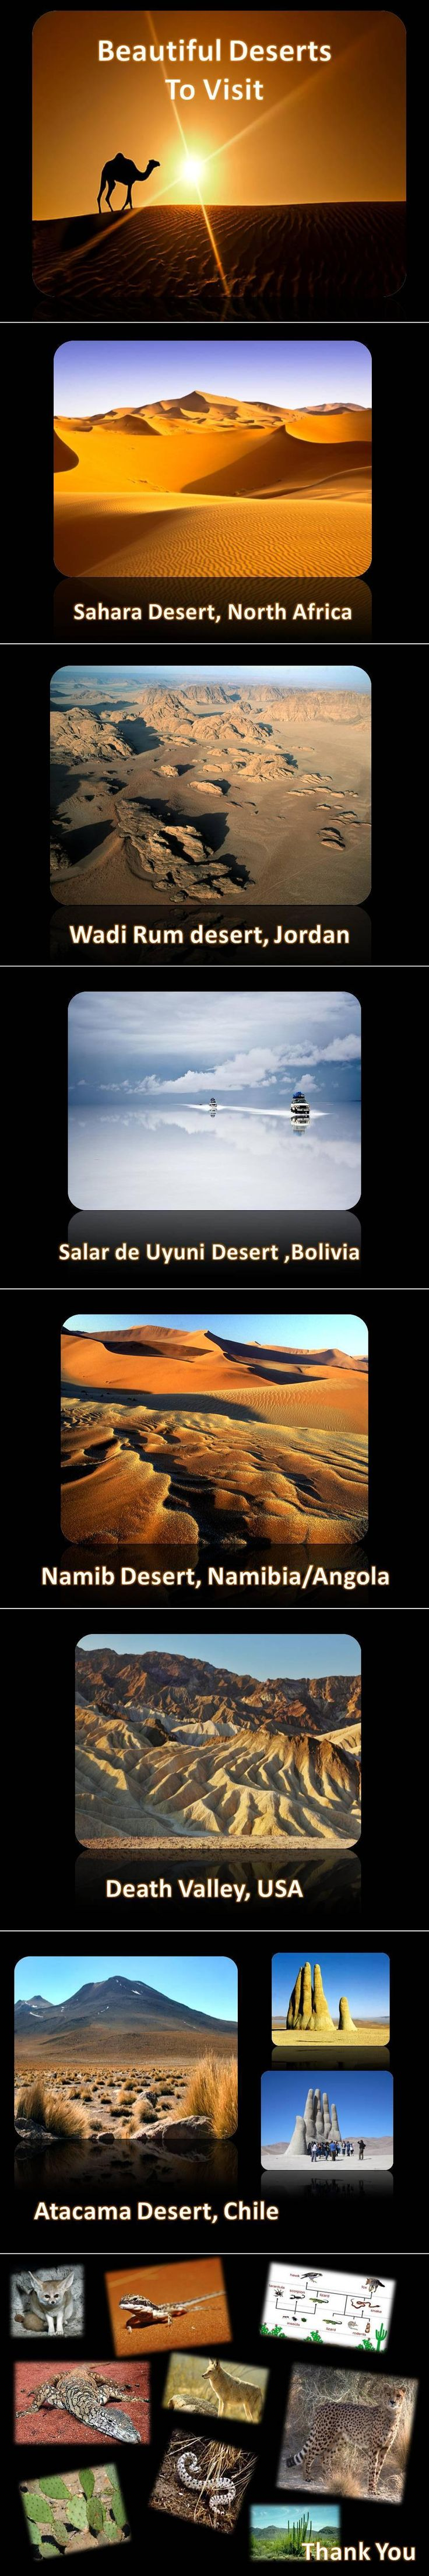 Deserts are arid regions, generally receiving less than ten inches of precipitation a year, or regions where the potential evaporation rate is twice as great as the precipitation.    The world's deserts are divided into four categories. Subtropical deserts are the hottest, with parched terrain and rapid evaporation. Although cool coastal deserts are located within the same latitudes as subtropical deserts, the average temperature is much cooler because of frigid offshore ocean currents.